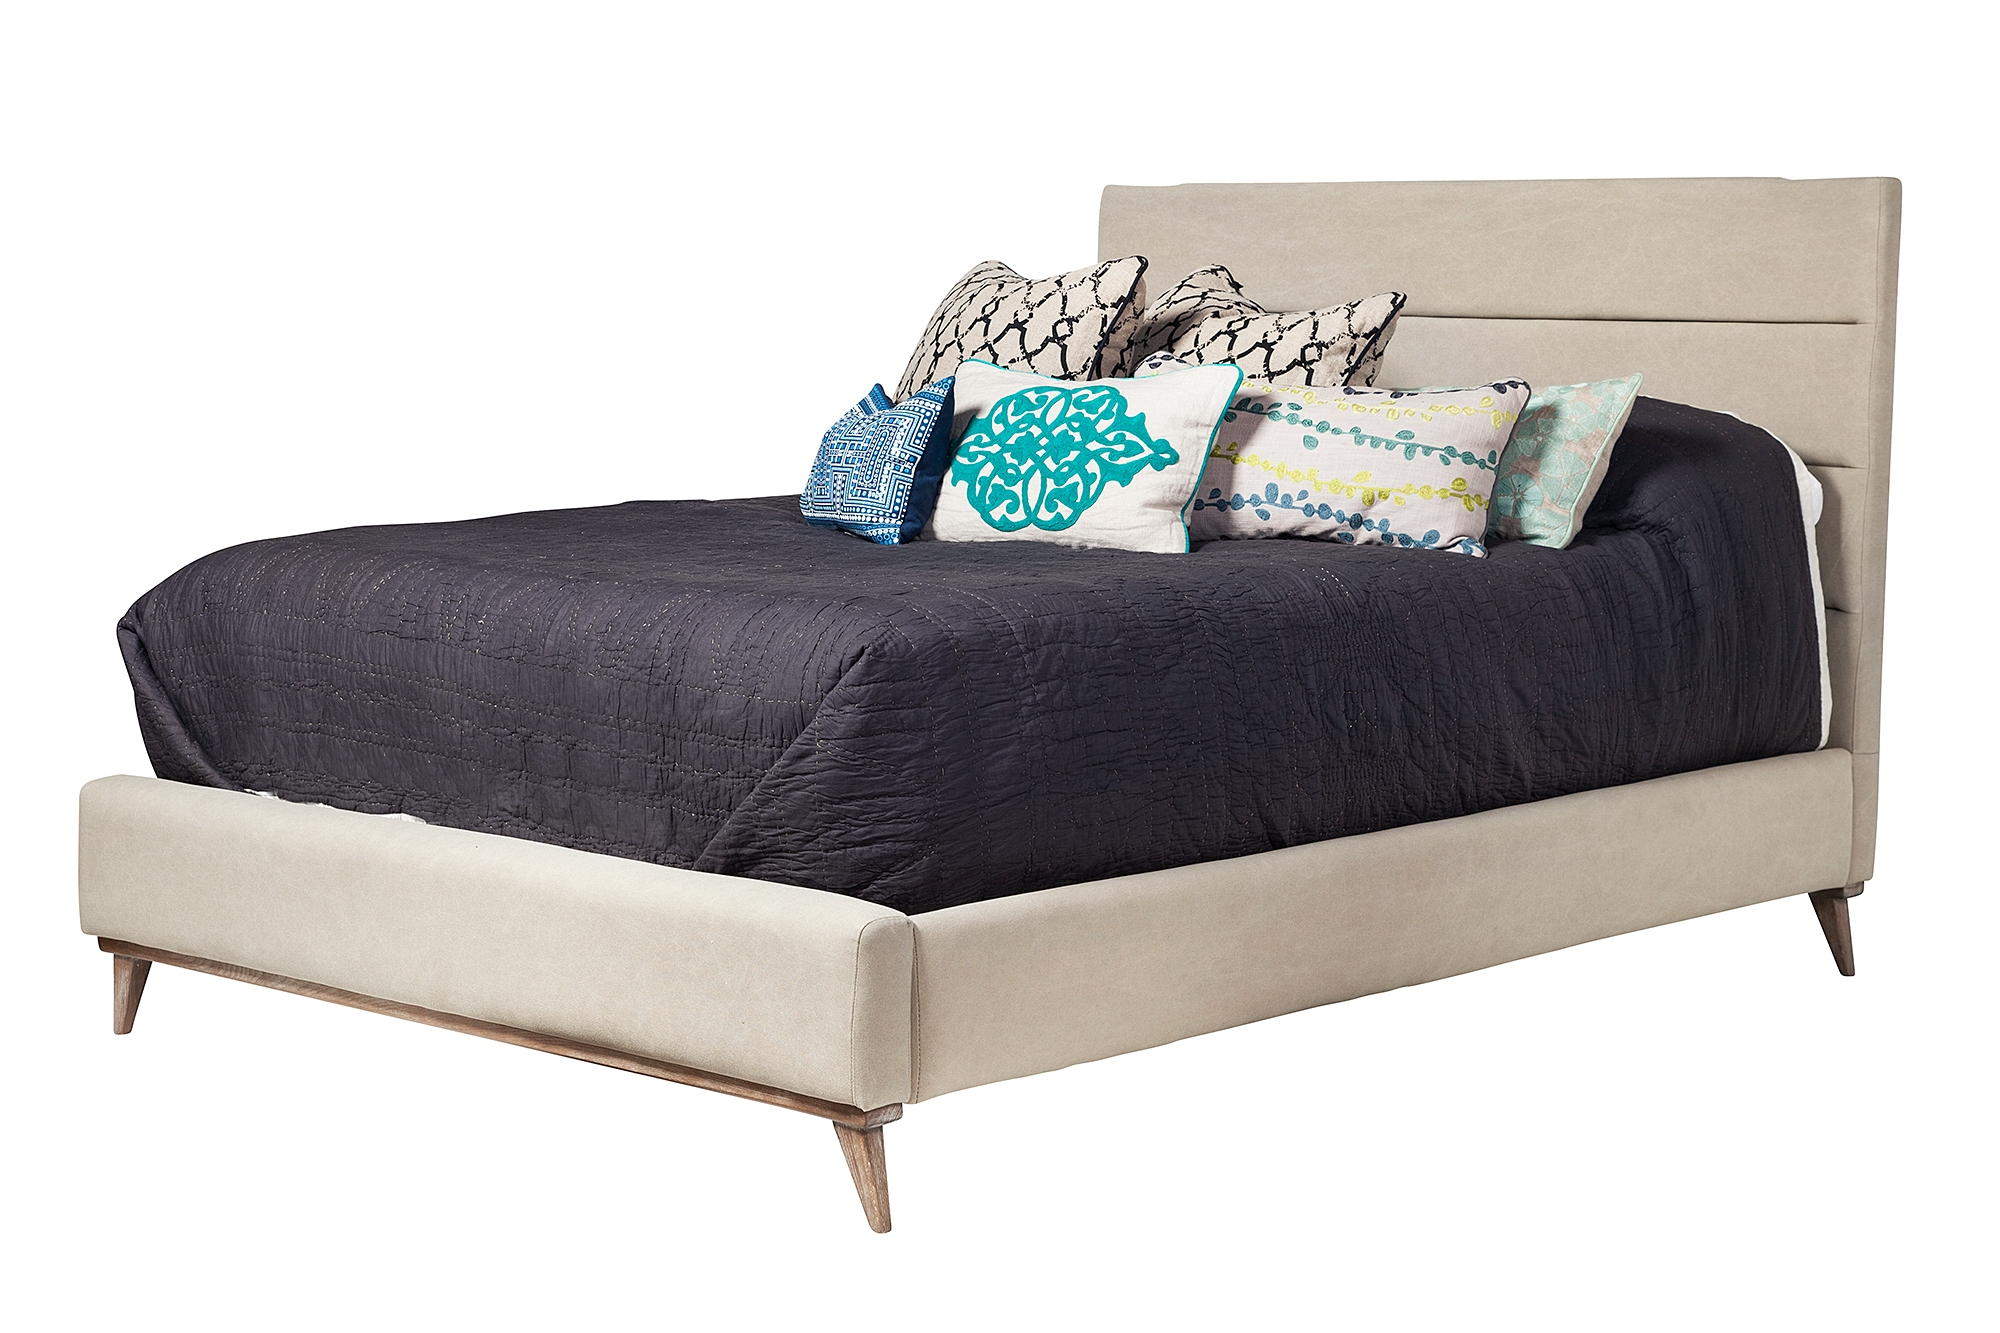 Cooper Upholstered Queen Bed Frame, The Khazana Home Austin ...